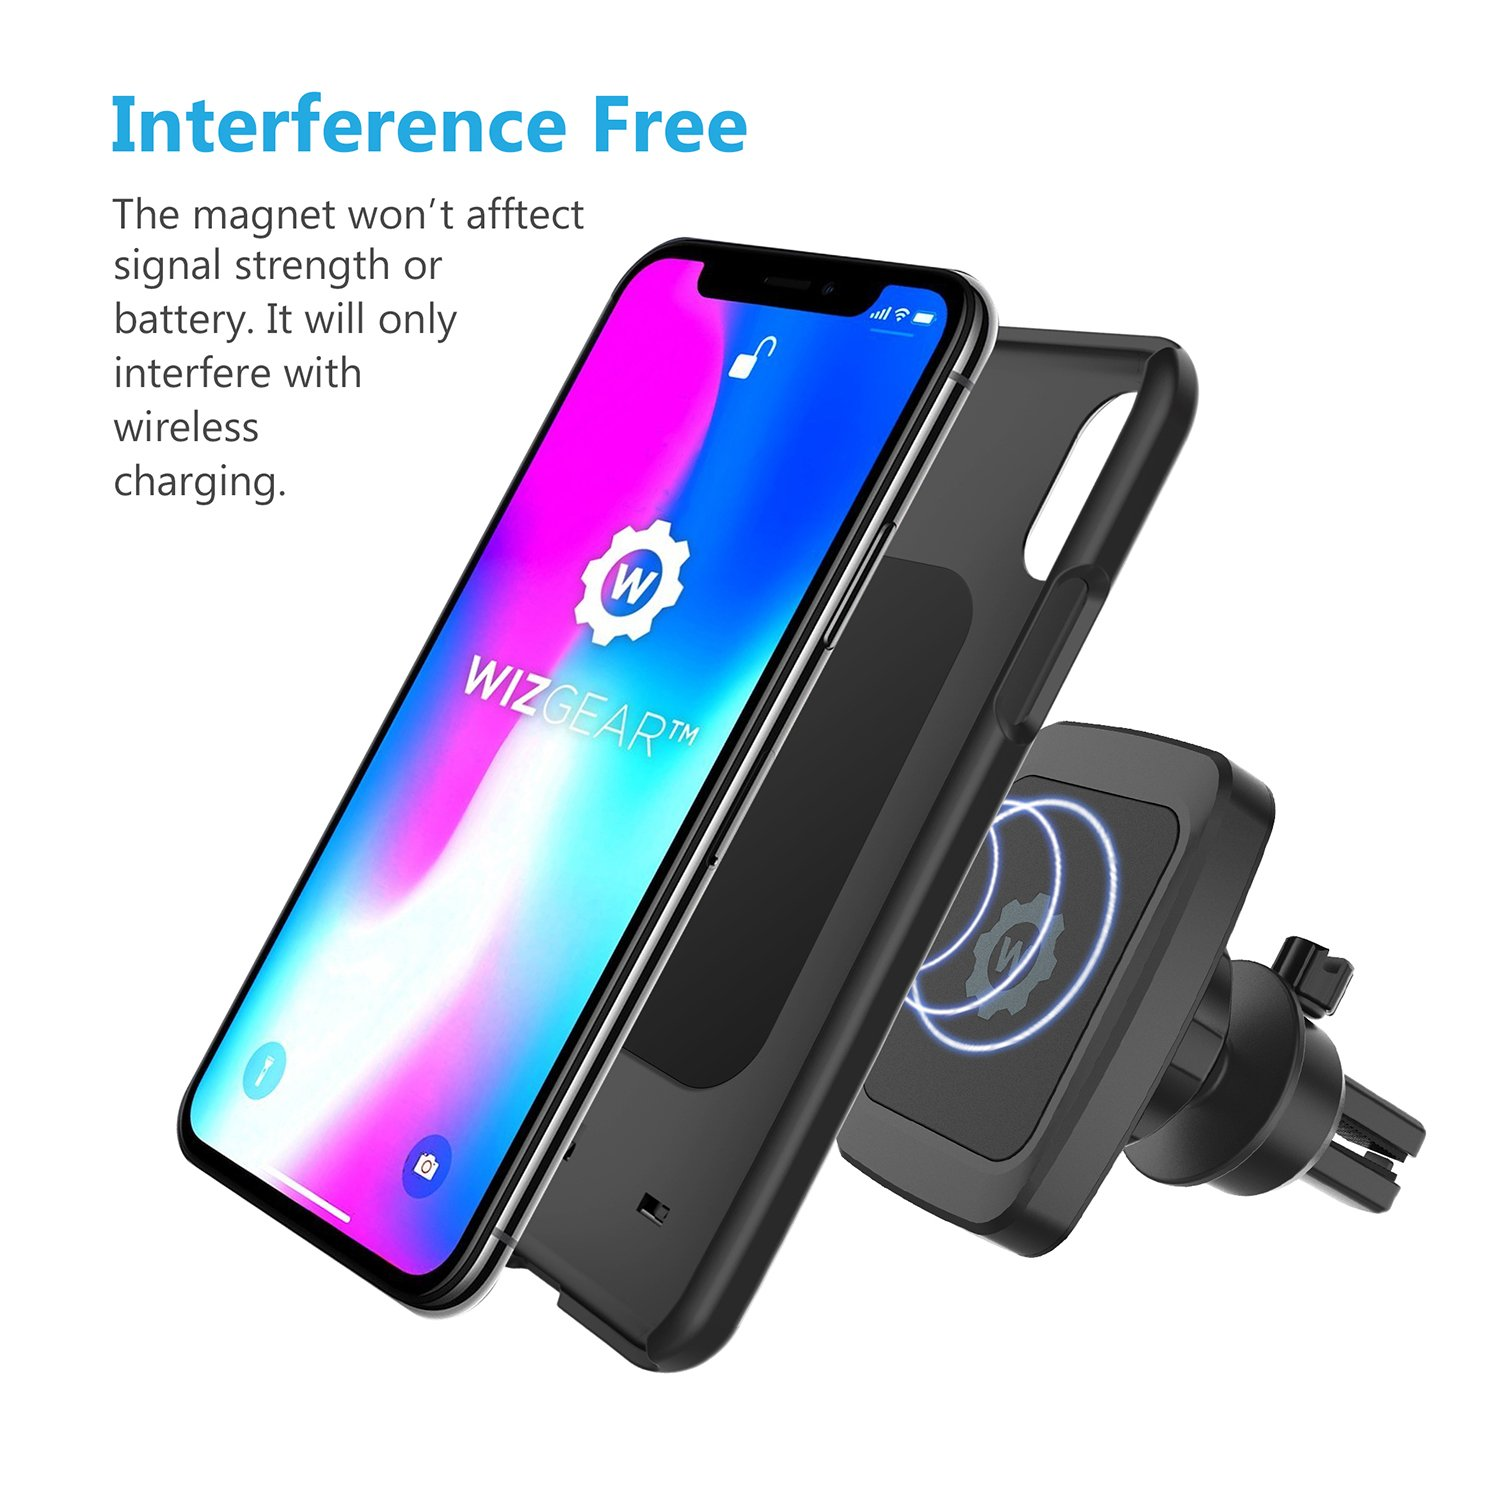 Magnetic Phone Car Mount for Cell Phones with Swift-snap Technology Magnetic car mount WizGear Universal Bite-Lock Air Vent Magnetic Phone Car Mount Holder Bite-Lock